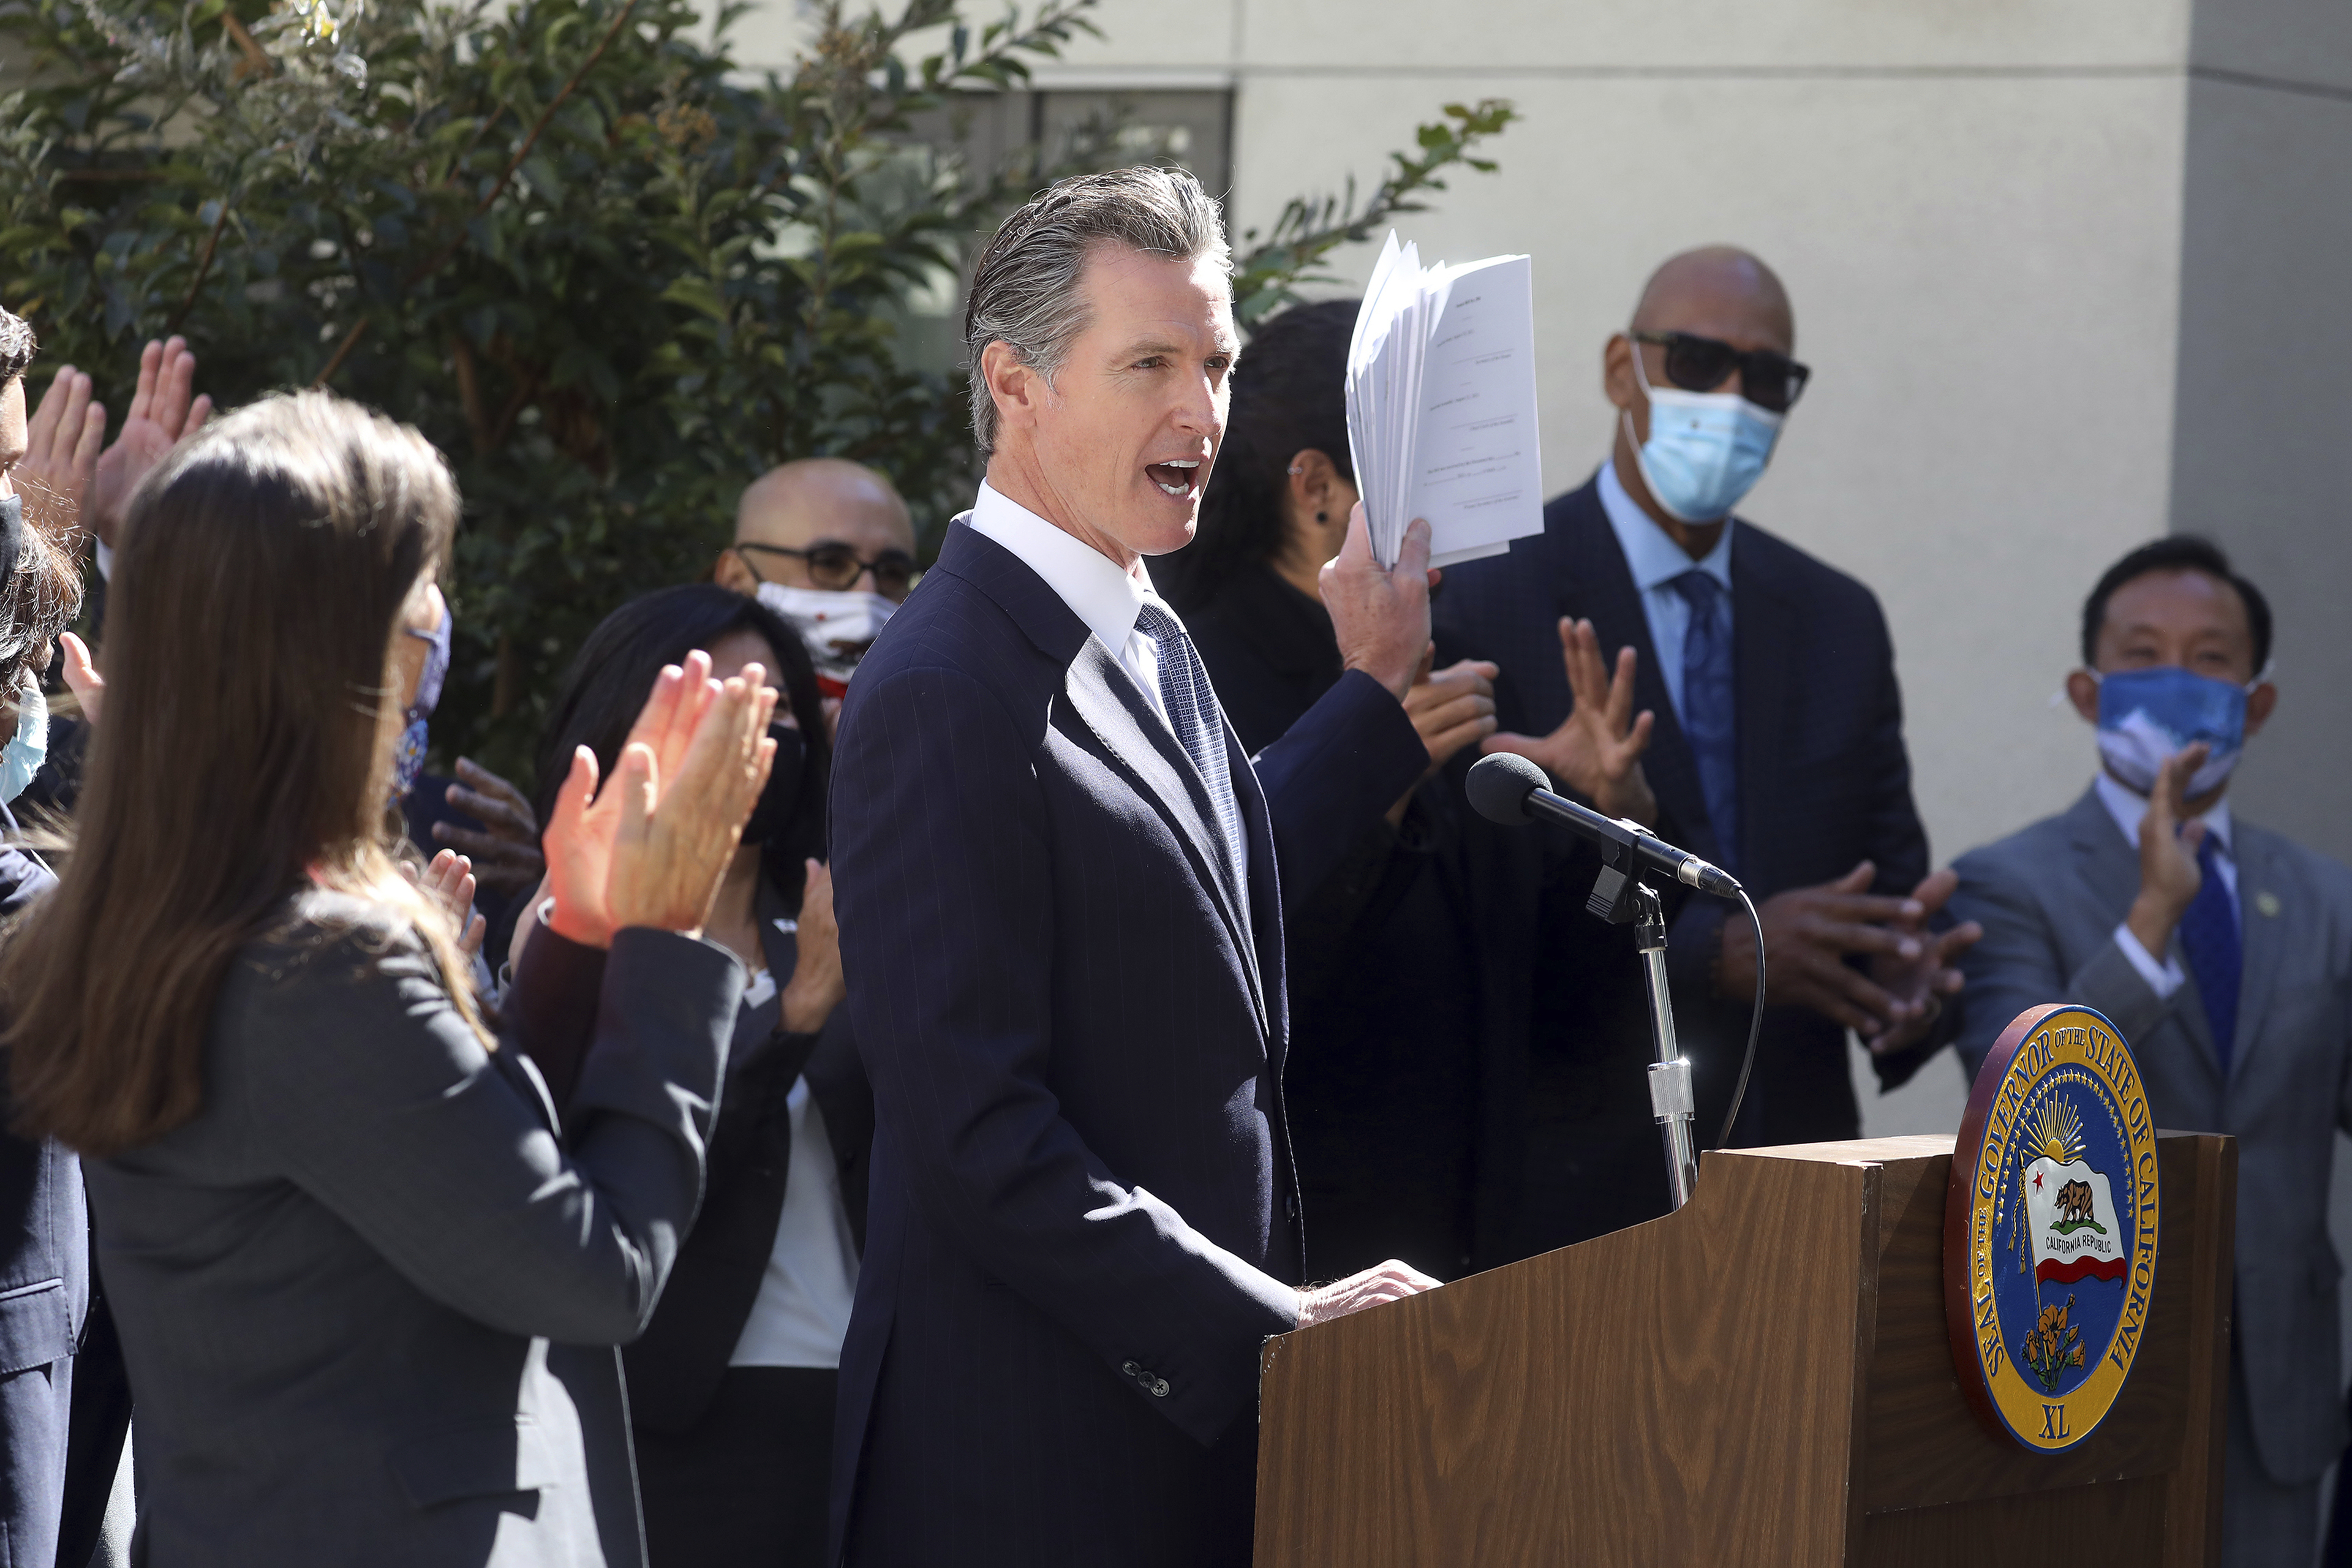 California Gov. Gavin Newsom speaks at a news conference to sign a number of housing bills at the Coliseum Connections apartment complex in Oakland, Calif., Tuesday, Sept. 28, 2021. Newsom signed seven new laws aimed at addressing the state's homeless crisis during an event in Los Angeles, on Wednesday, Sept. 29.